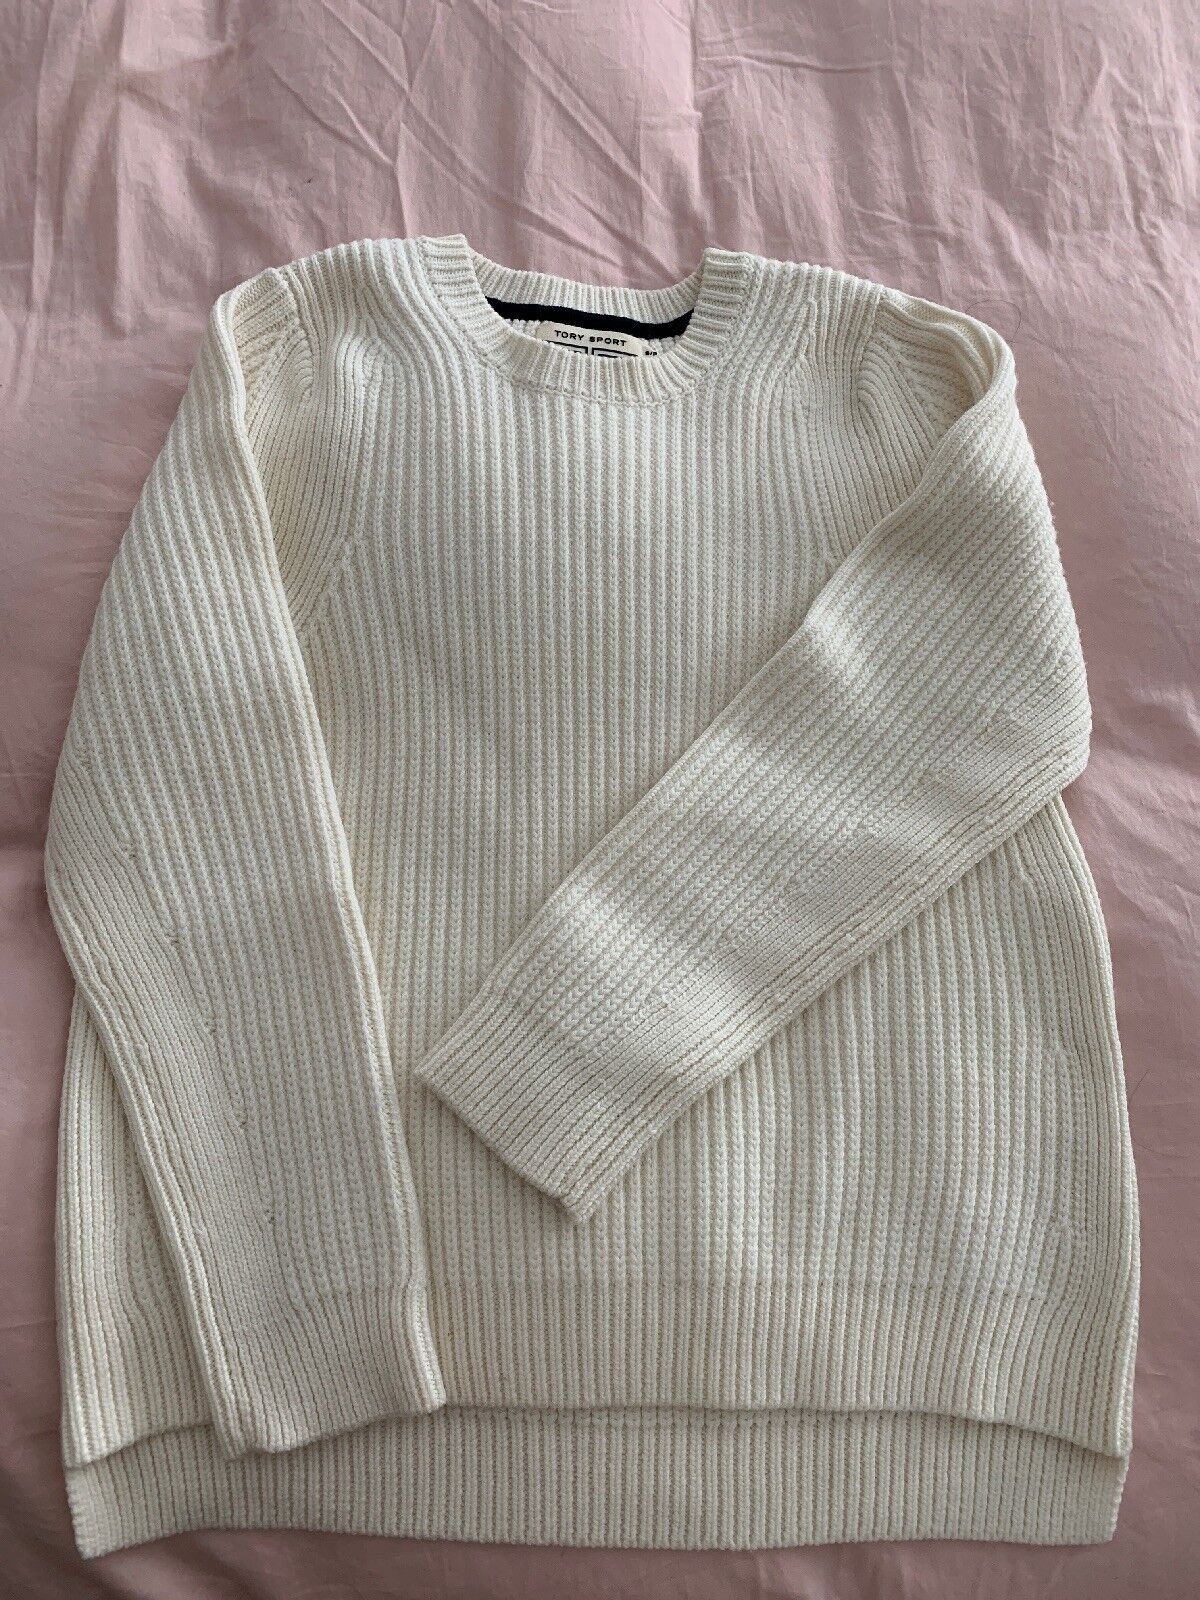 Tory Burch Tory Sport White  Over Sized Sweater S P